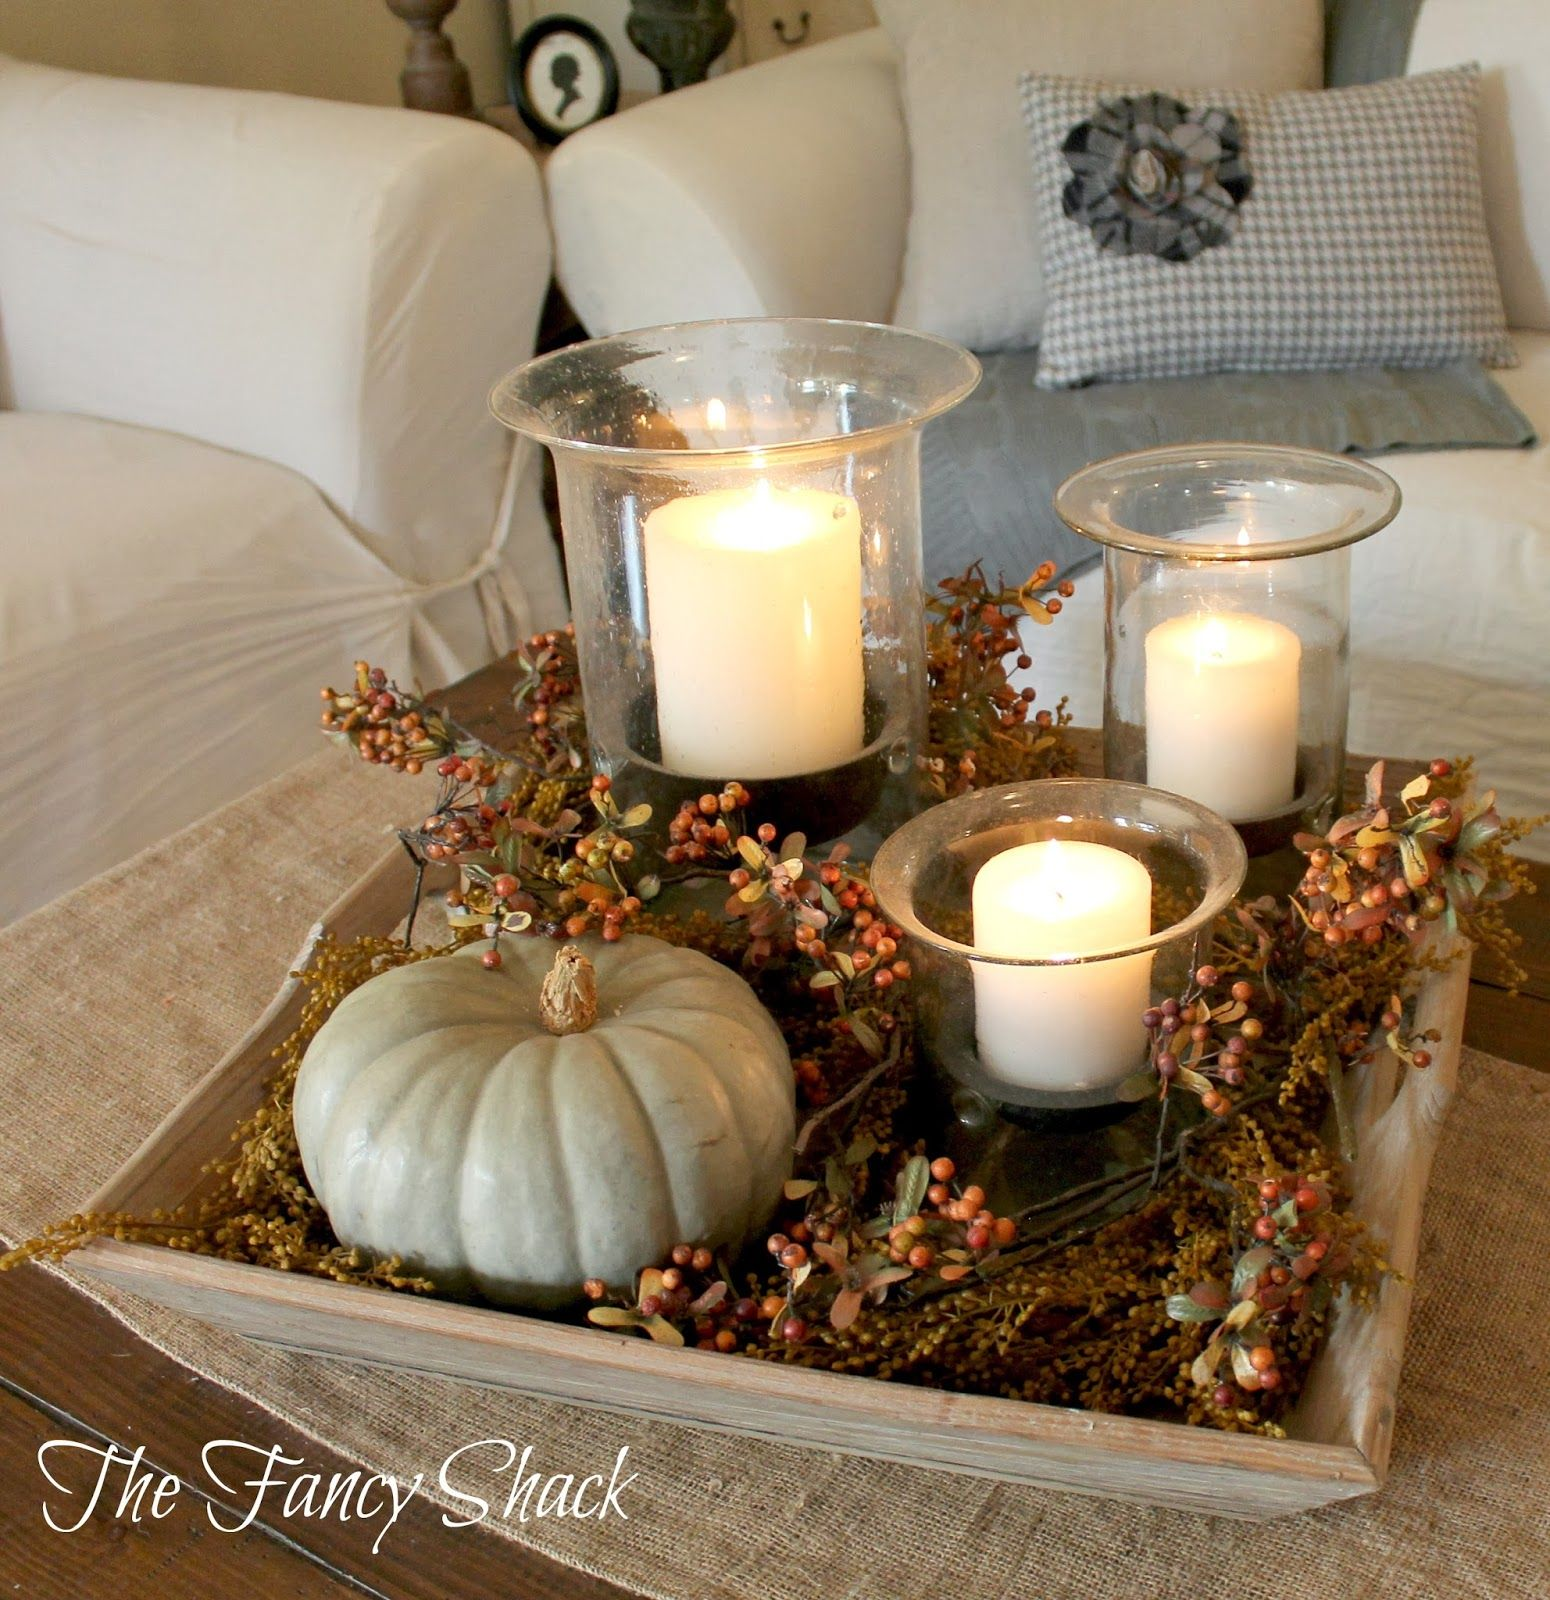 30 pretty candle decoration ideas for thanksgiving Fall decorating ideas for dinner party